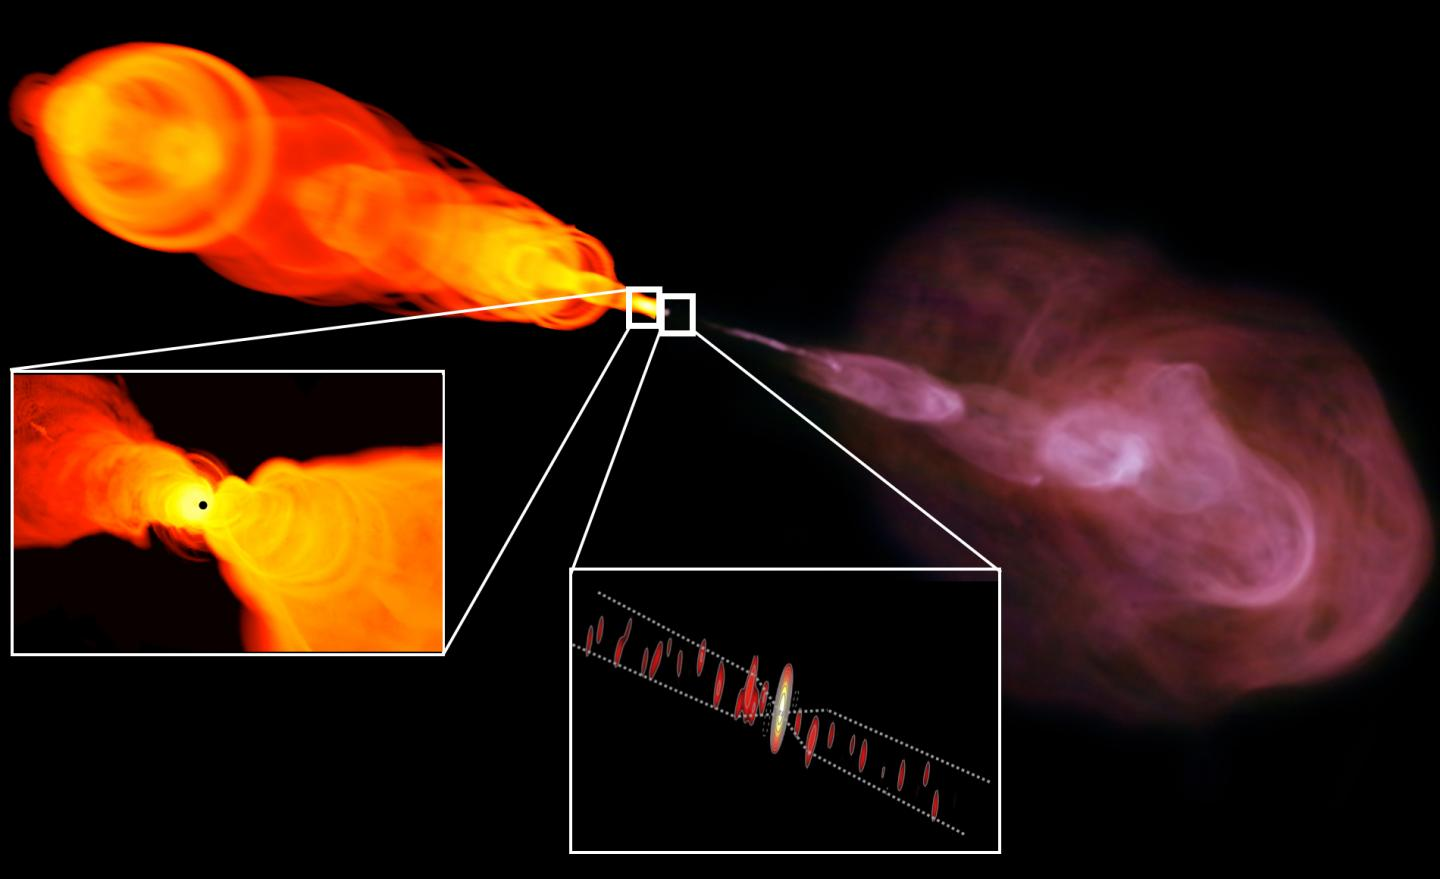 Jets from Black Holes